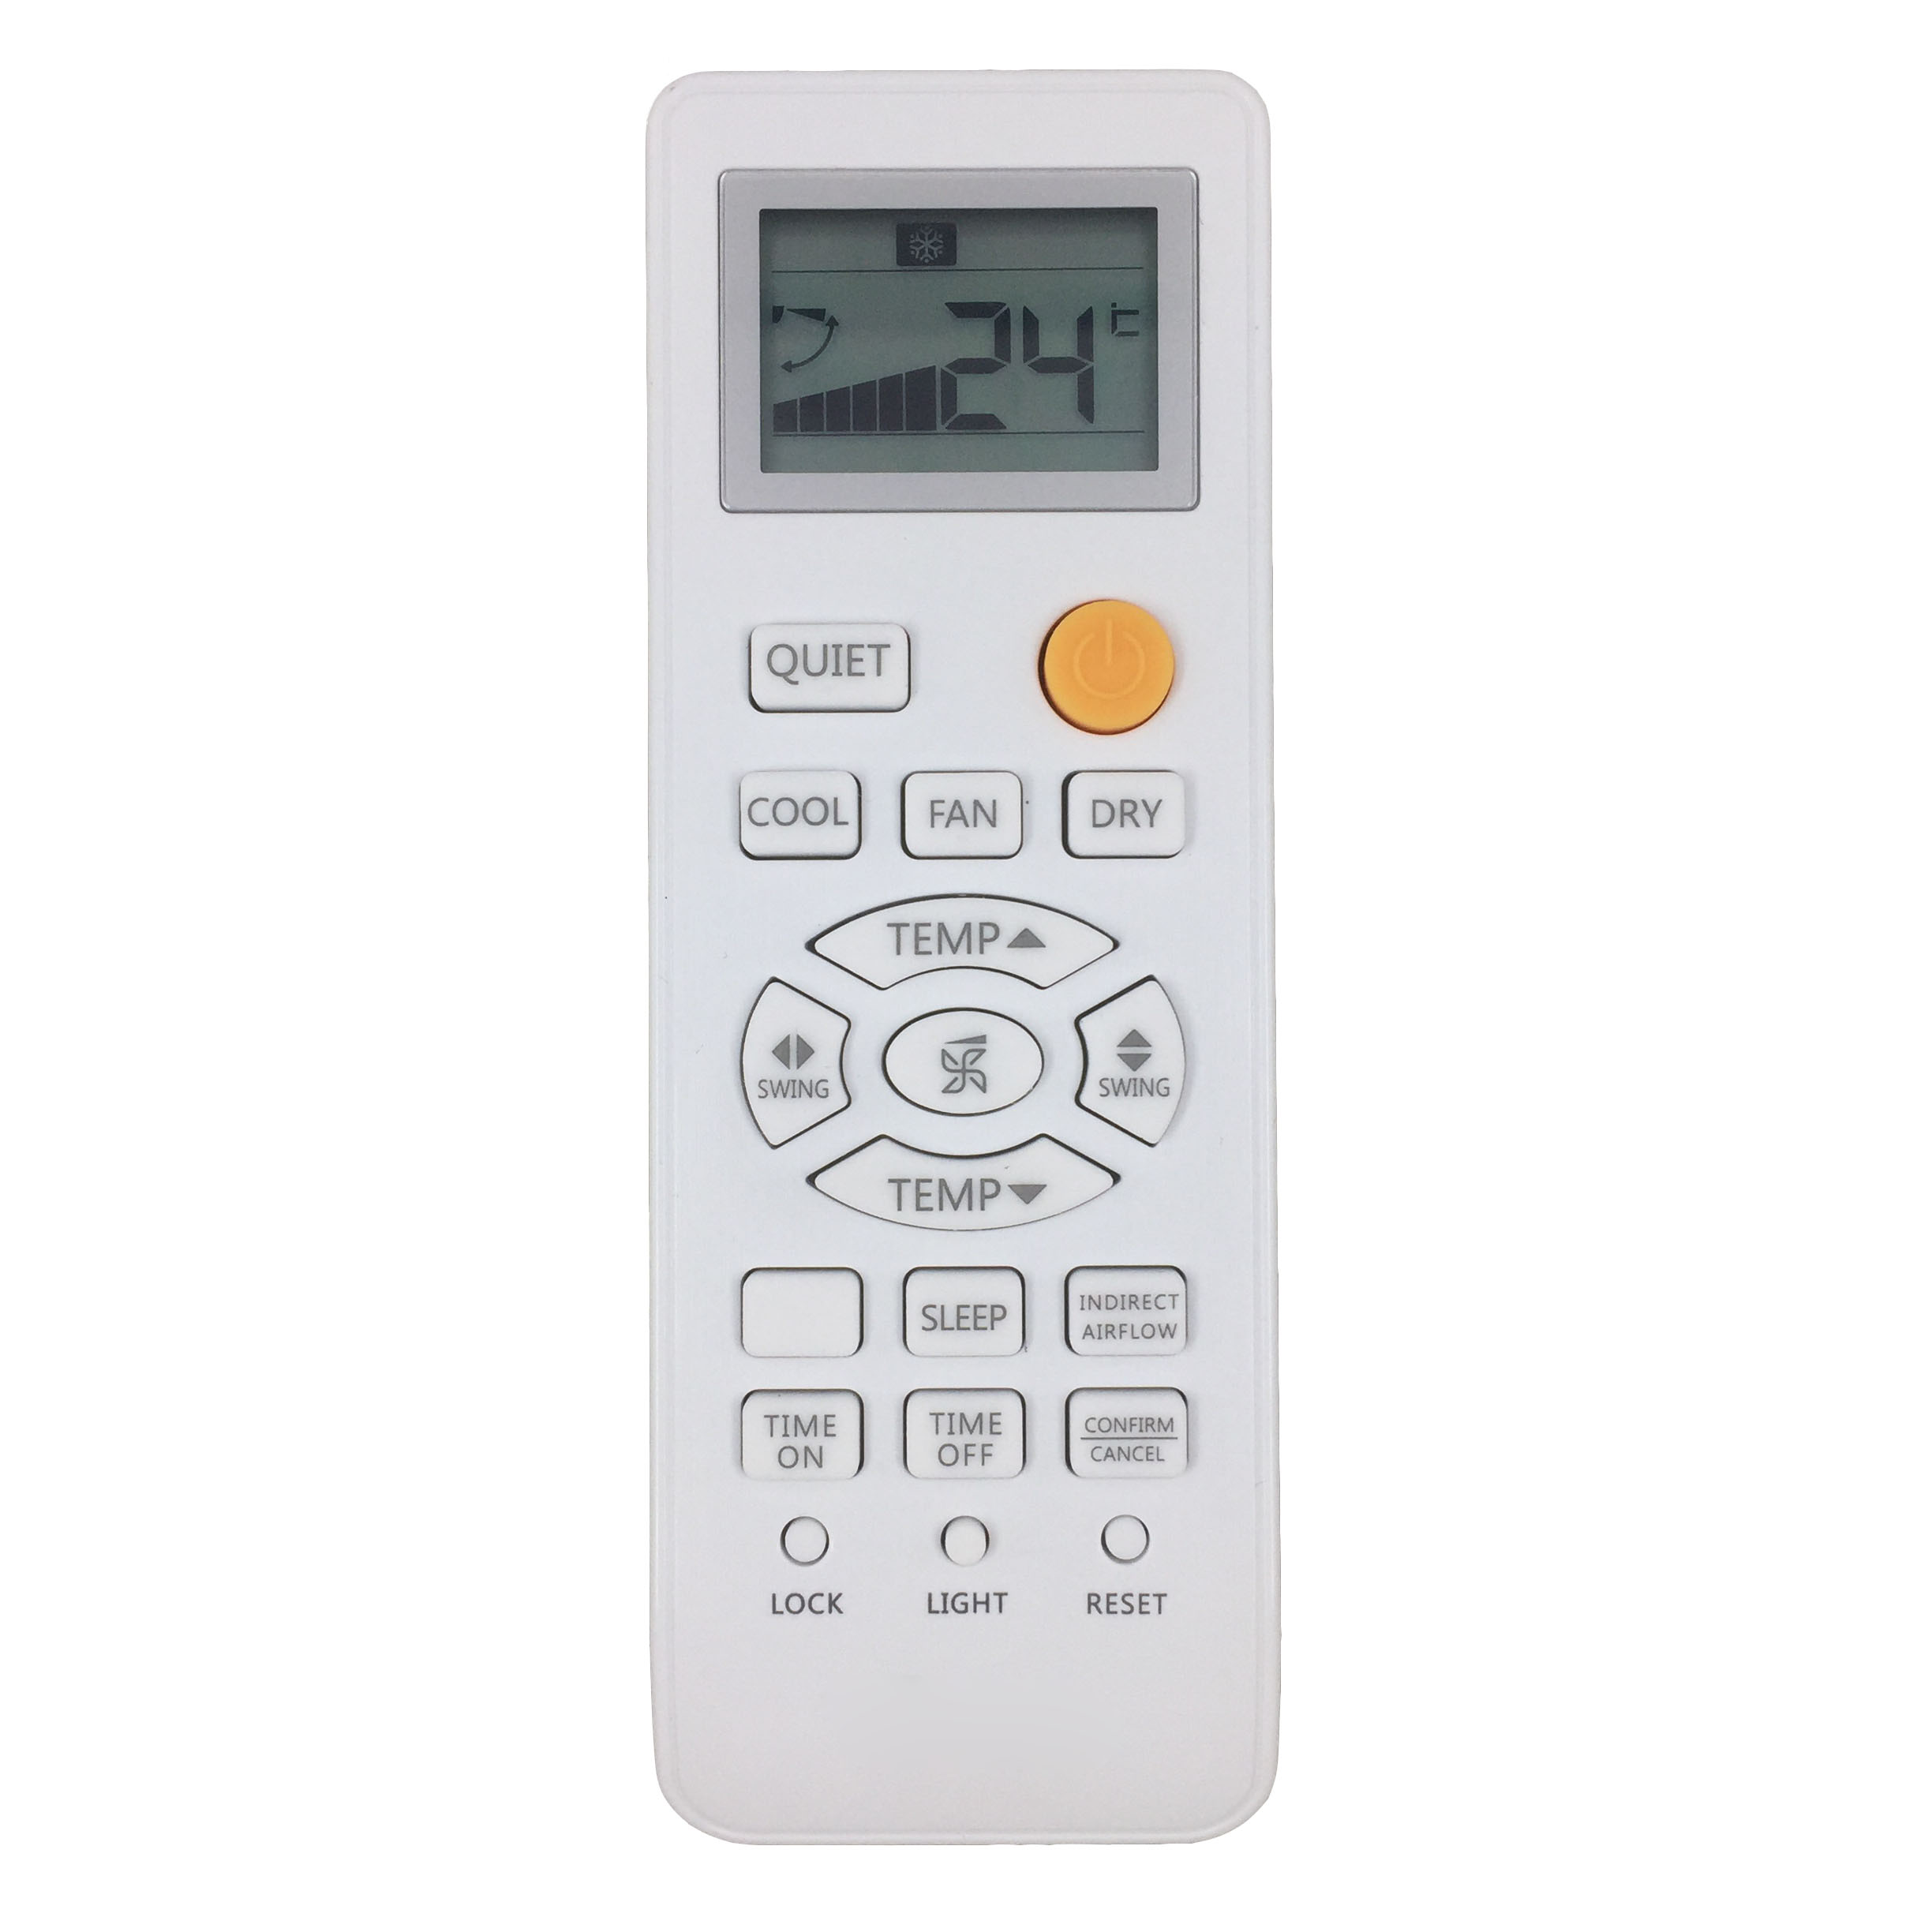 Open Bag LG AKB75375604 Remote Control